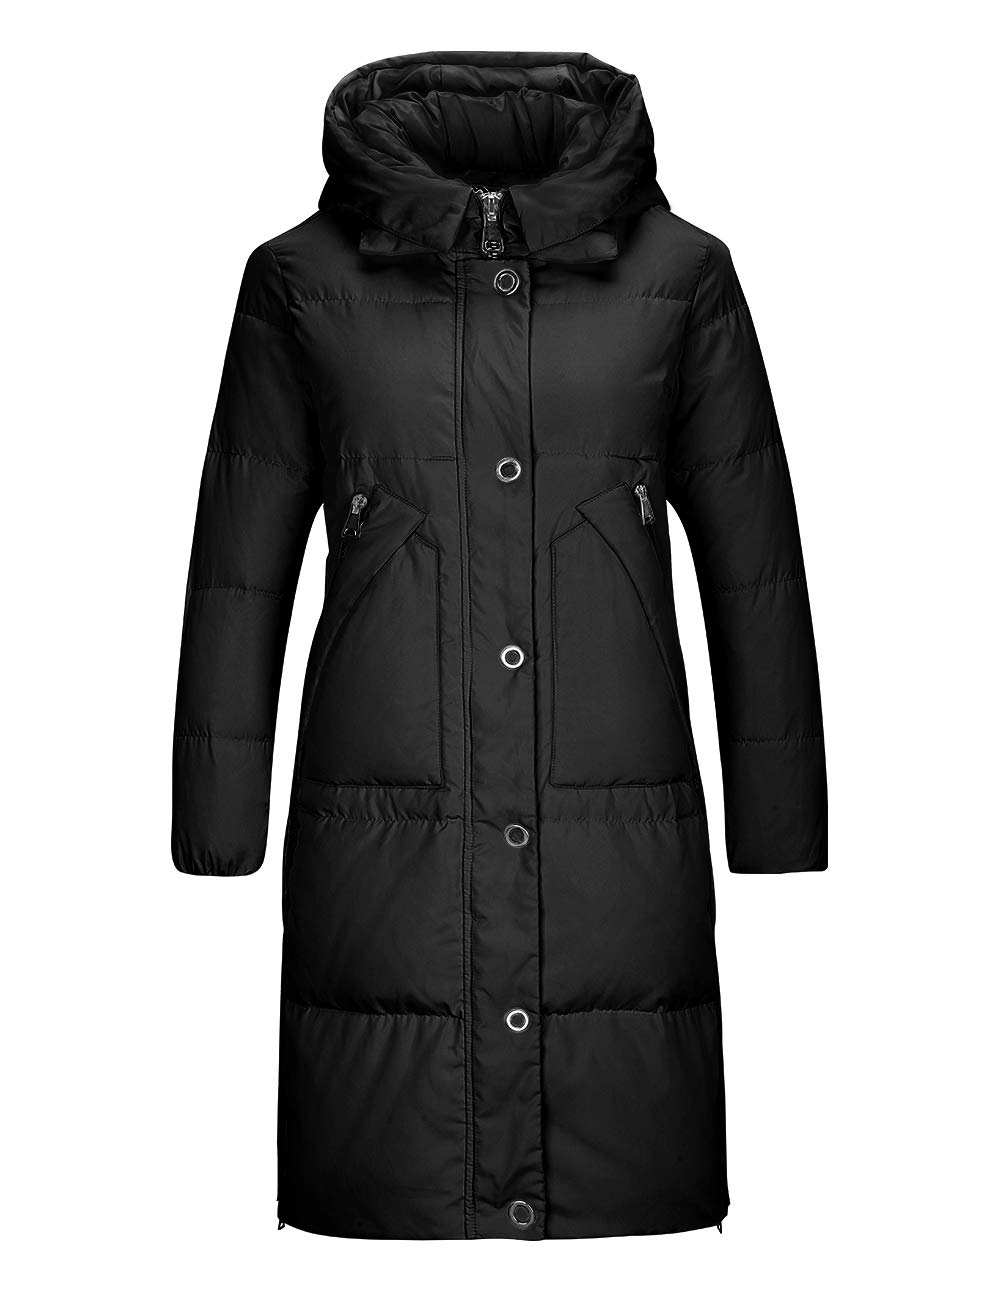 INCHOICE Women's Long Down Jacket with Hood - Petite Sports Outdoor Thickened Down Puffer Coat for Ladies Water Resistant Winter Warm Parka Outerwear (Black, Small) by INCHOICE